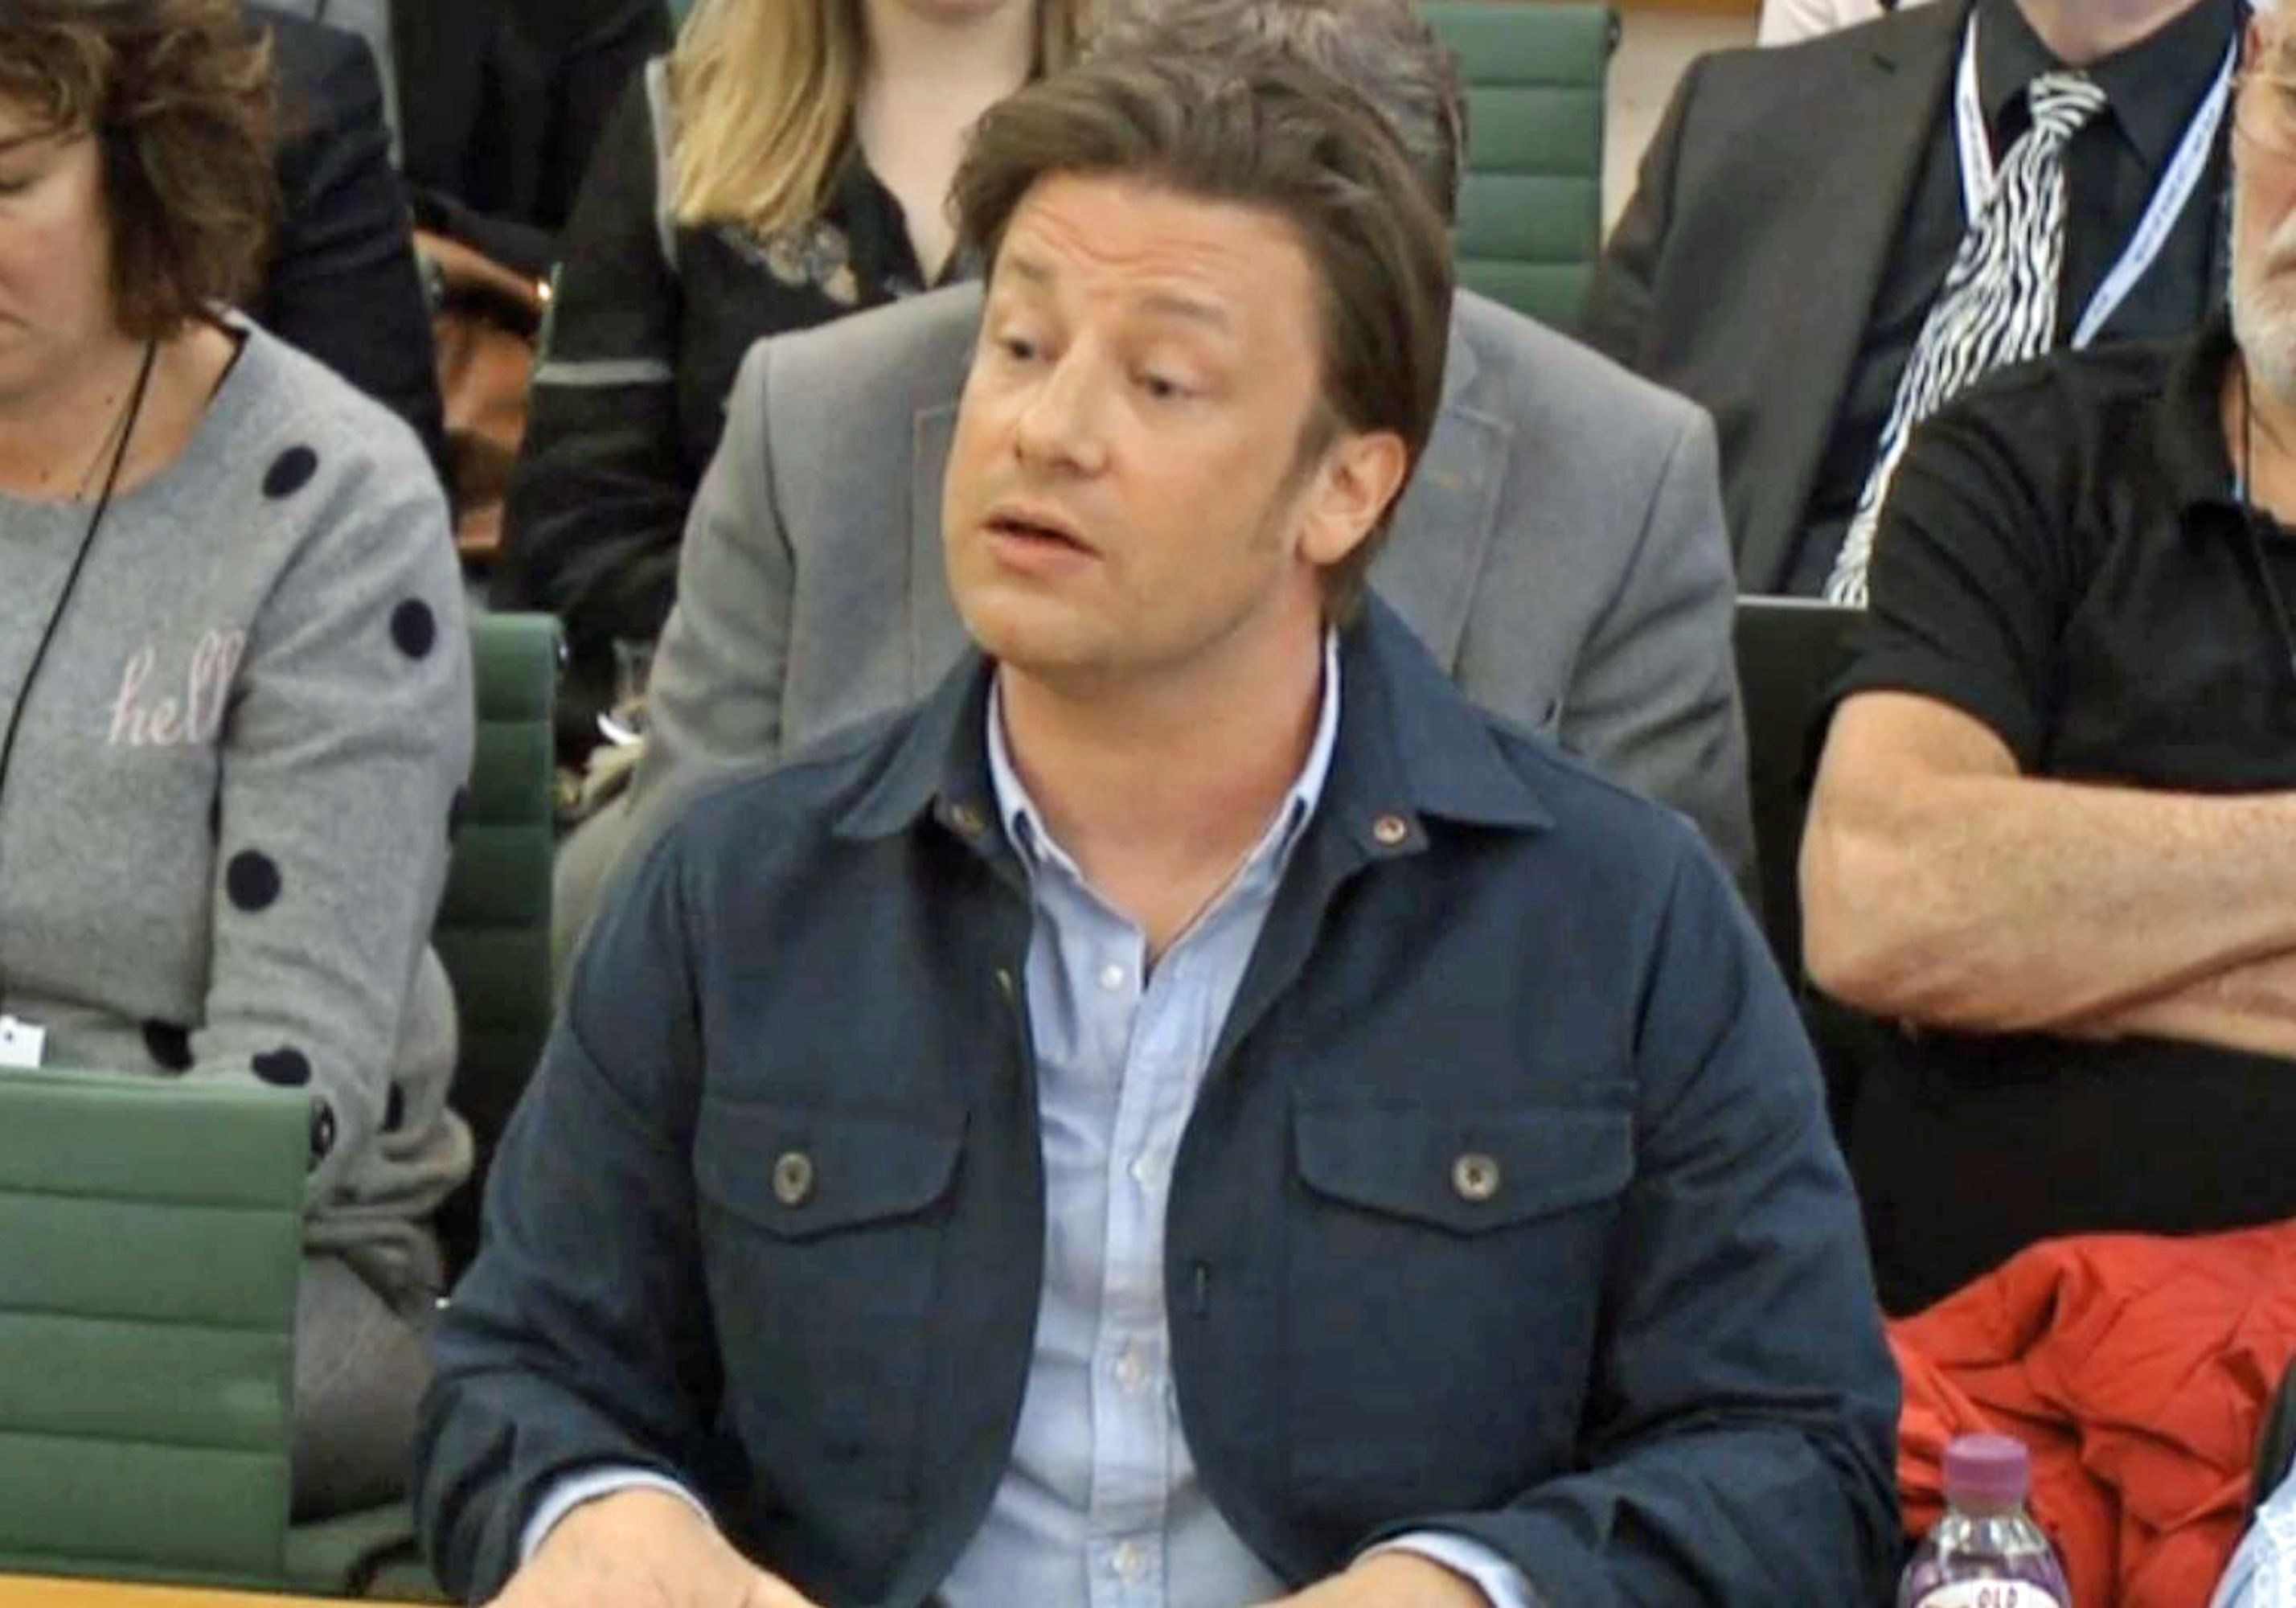 This Row Over Jamie Oliver's Jerk Rice Gets Very Heated